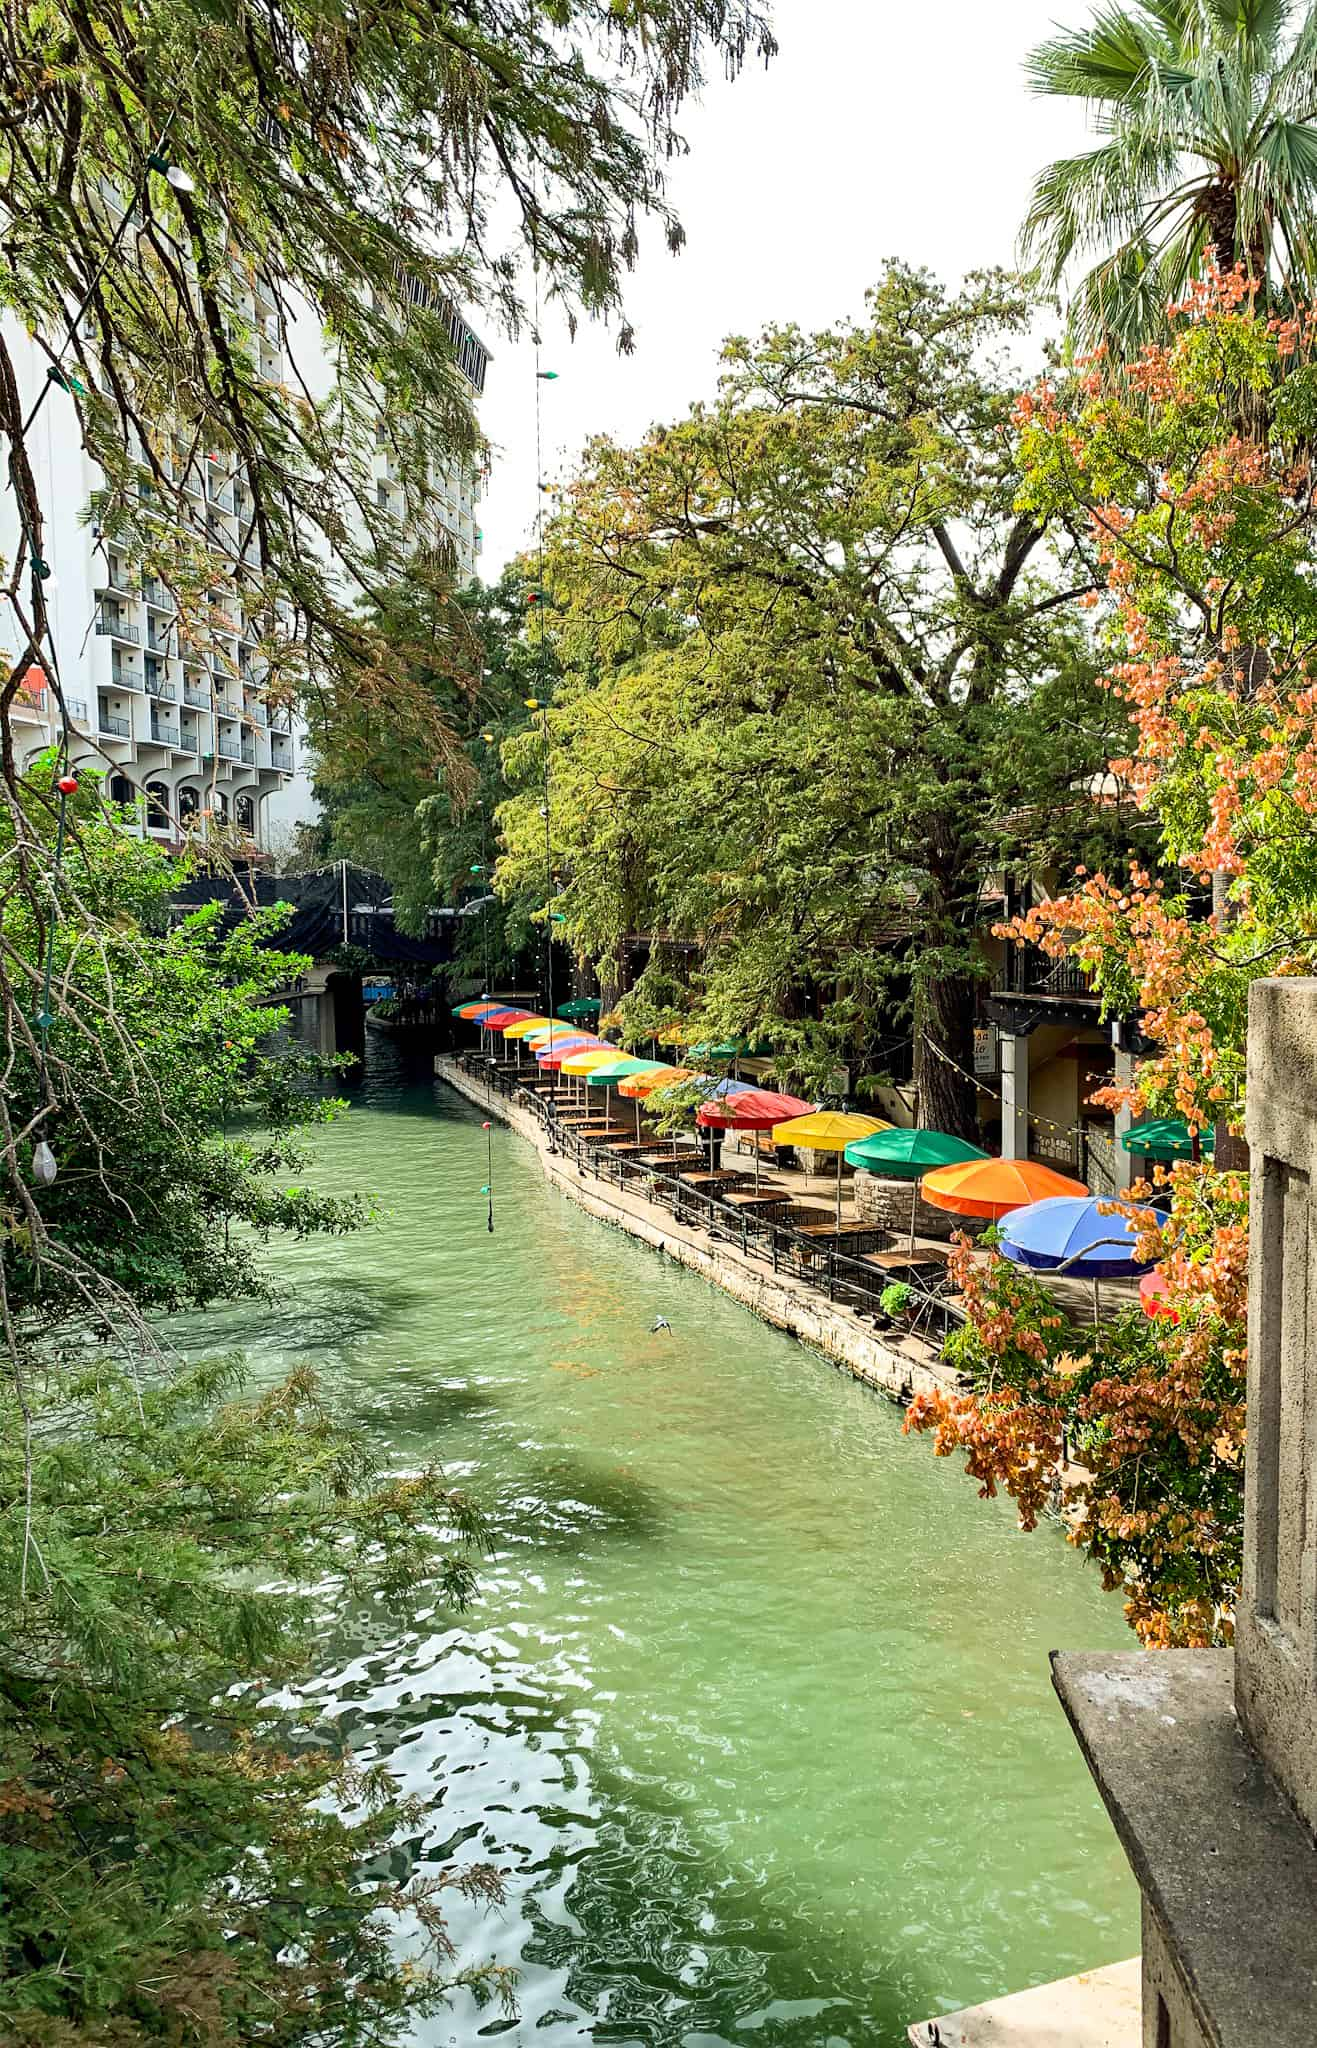 Riverwalk à San Antonio, Texas